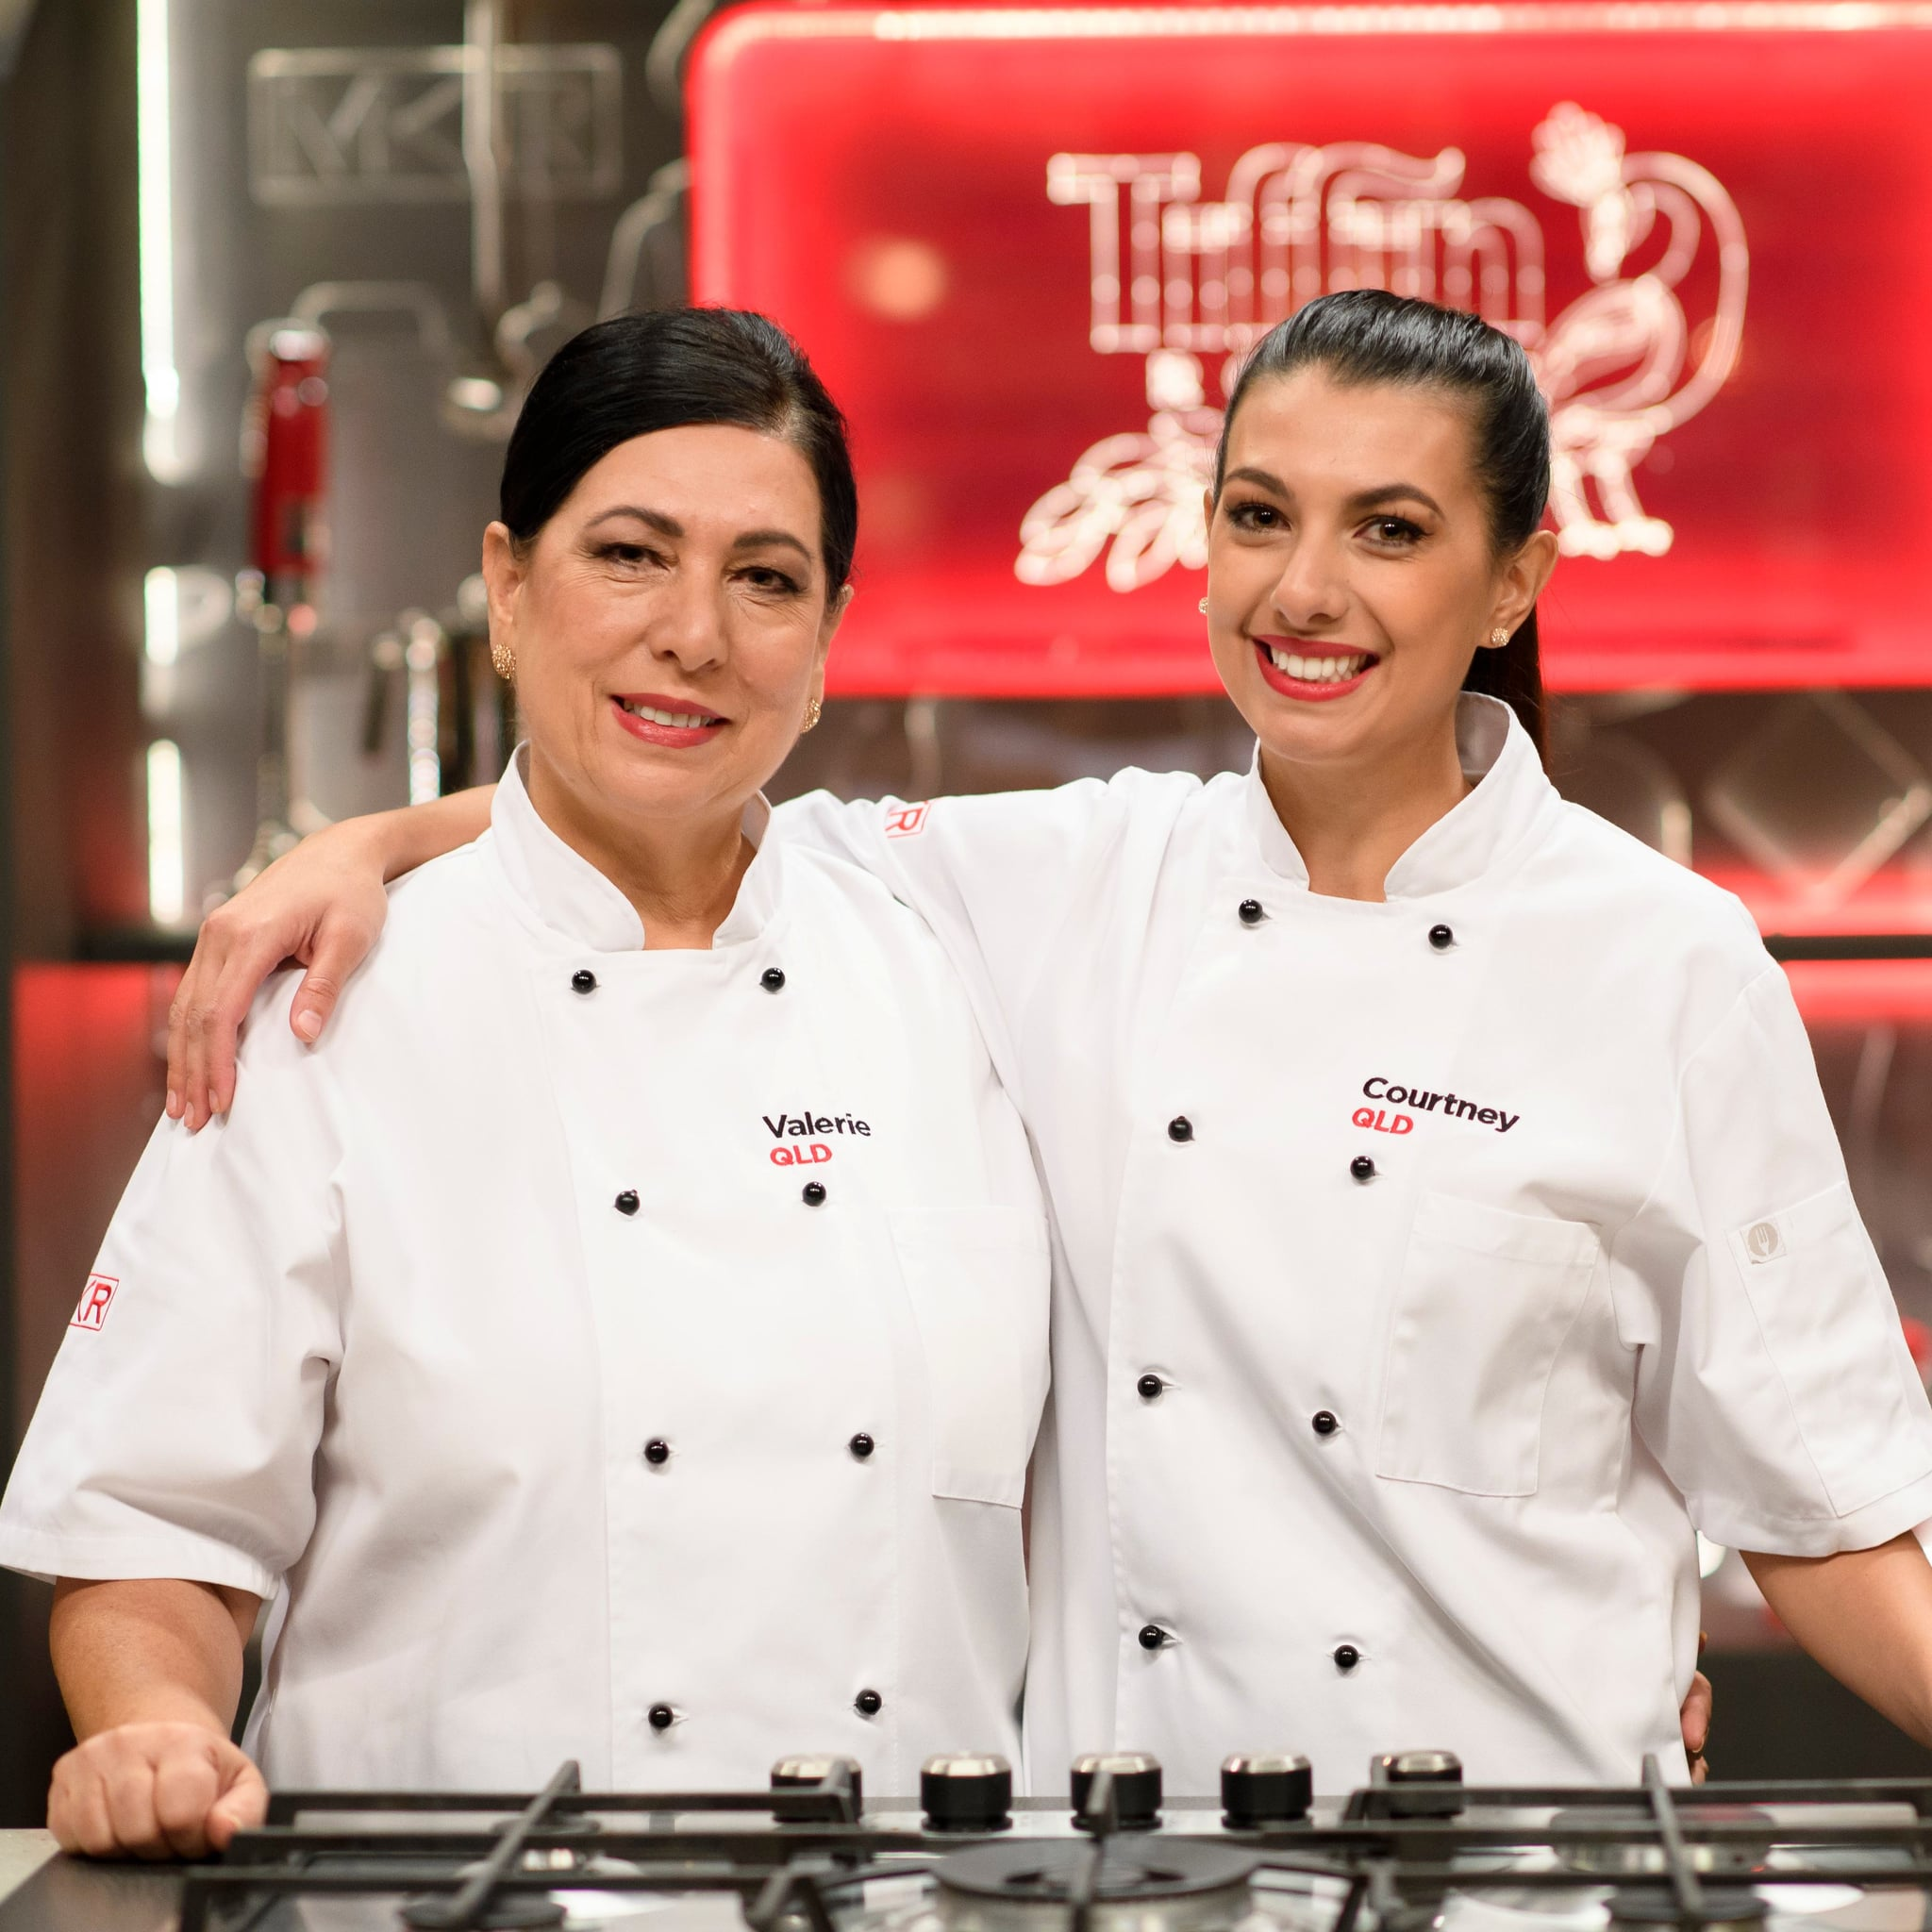 Valerie and Courtney Interview From My Kitchen Rules 2017 | POPSUGAR ...